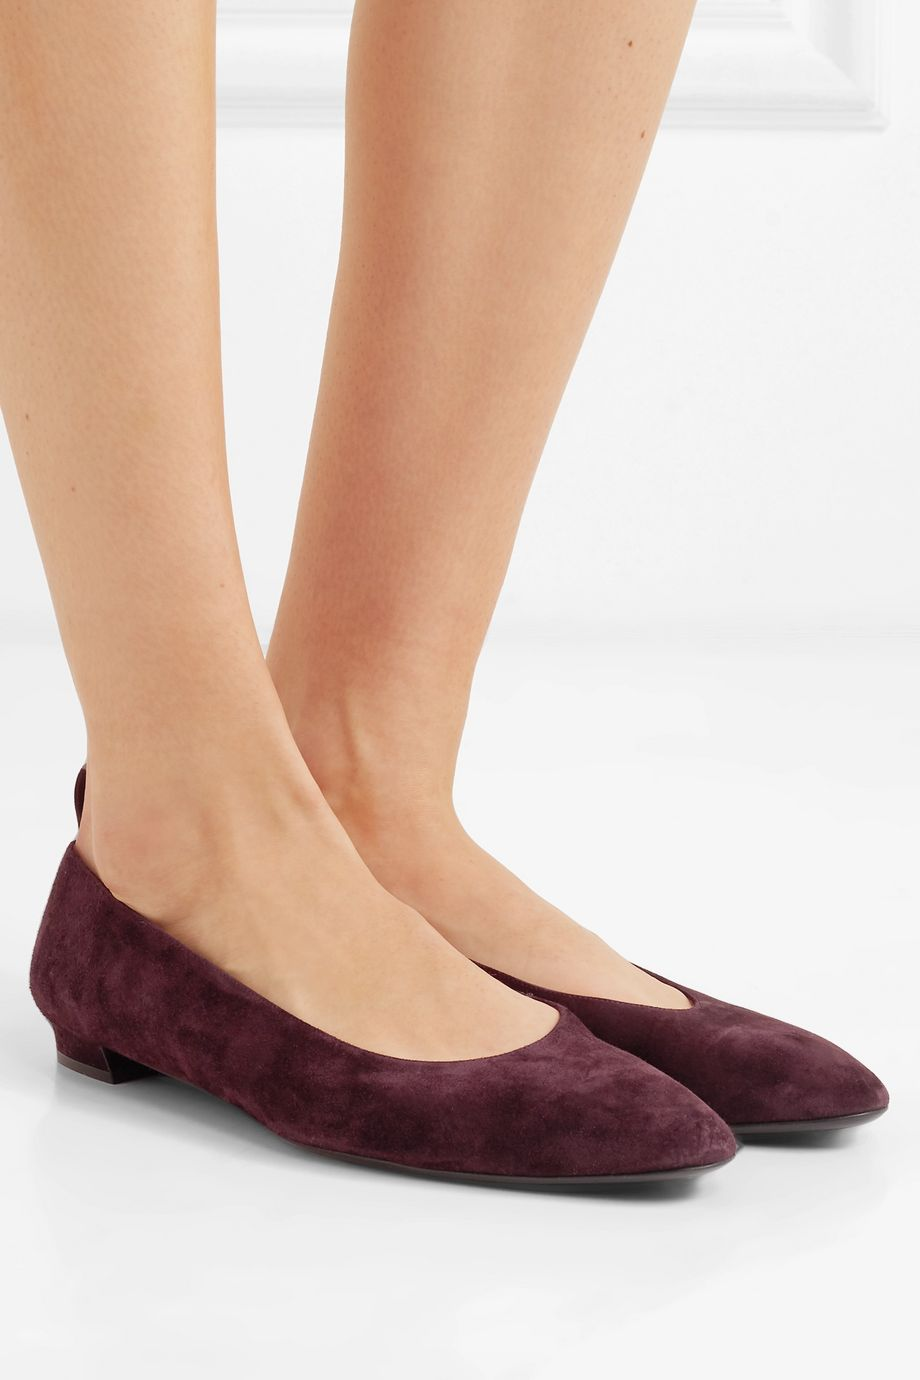 The Row Lady D suede ballet flats